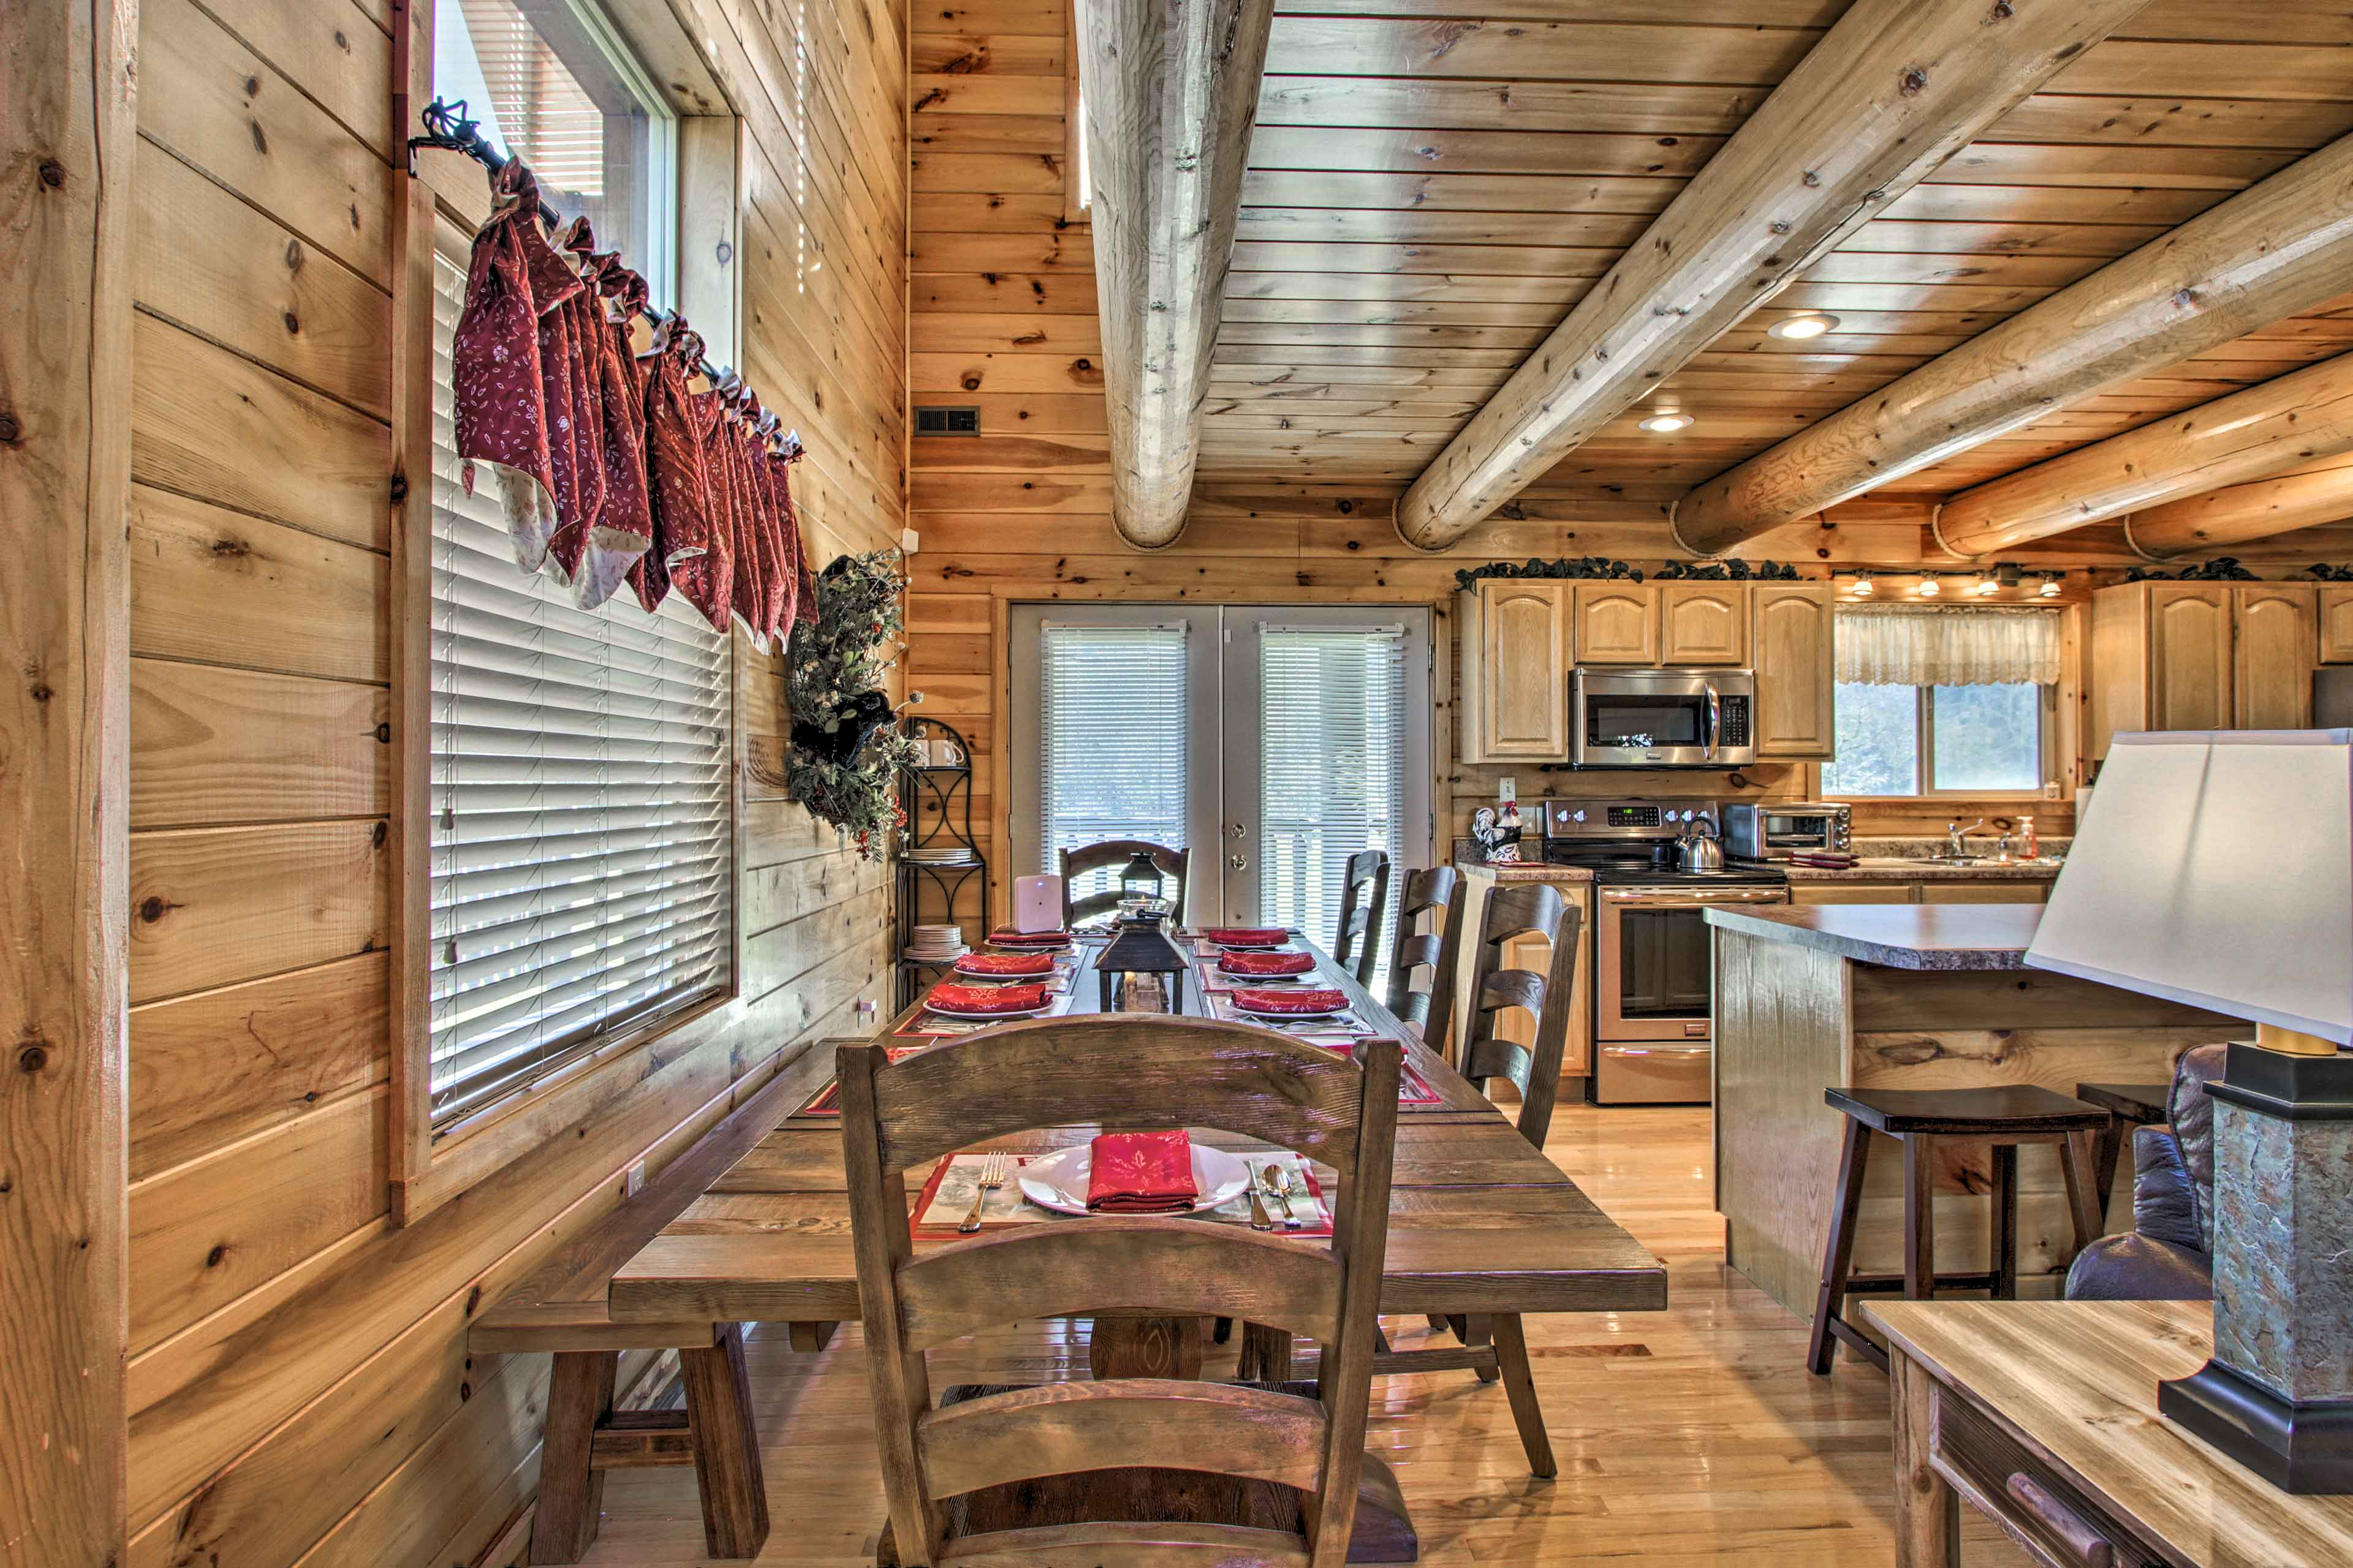 Wood paneling and Northwoods decor add a touch of alpine ambiance.